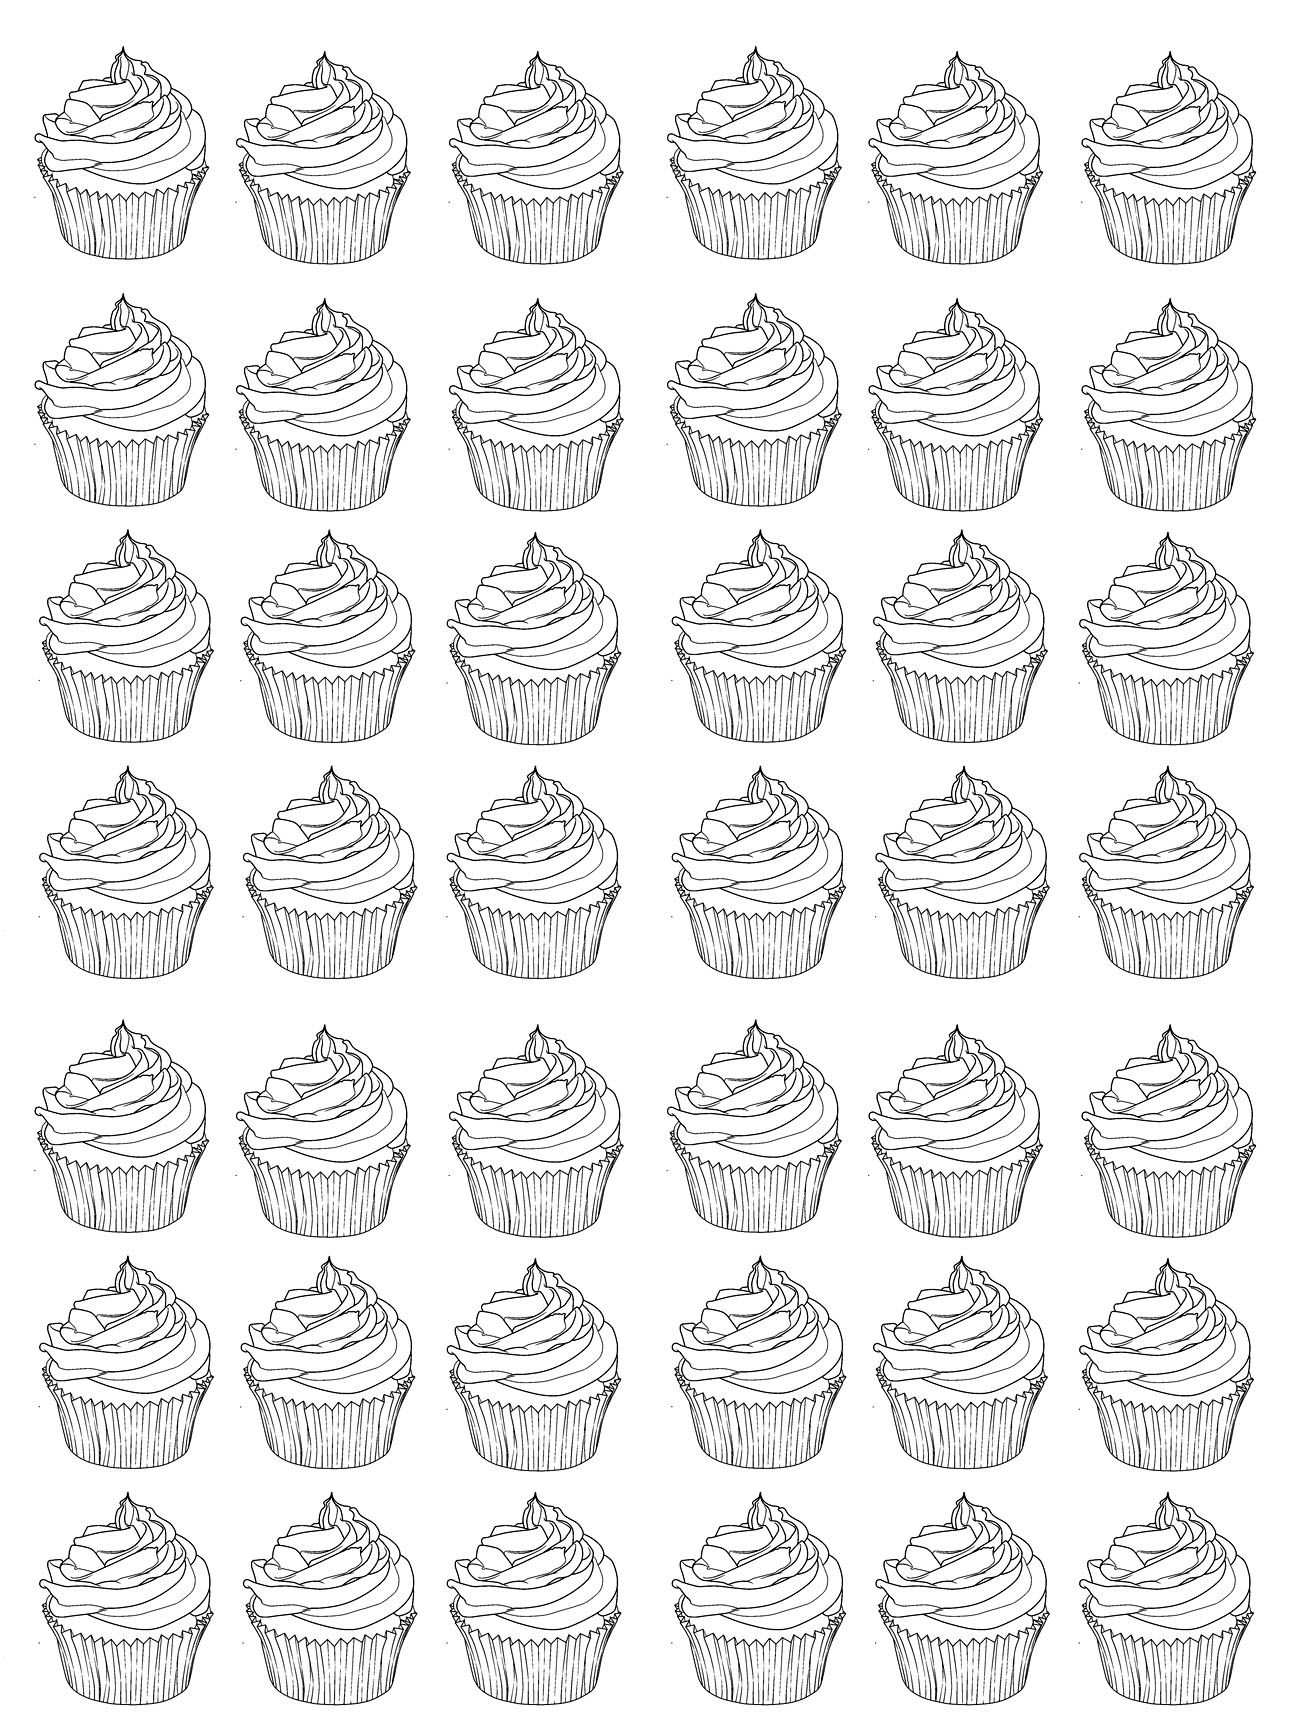 - Cupcakes And Andy Warhol - Cupcakes And Cakes Coloring Pages For